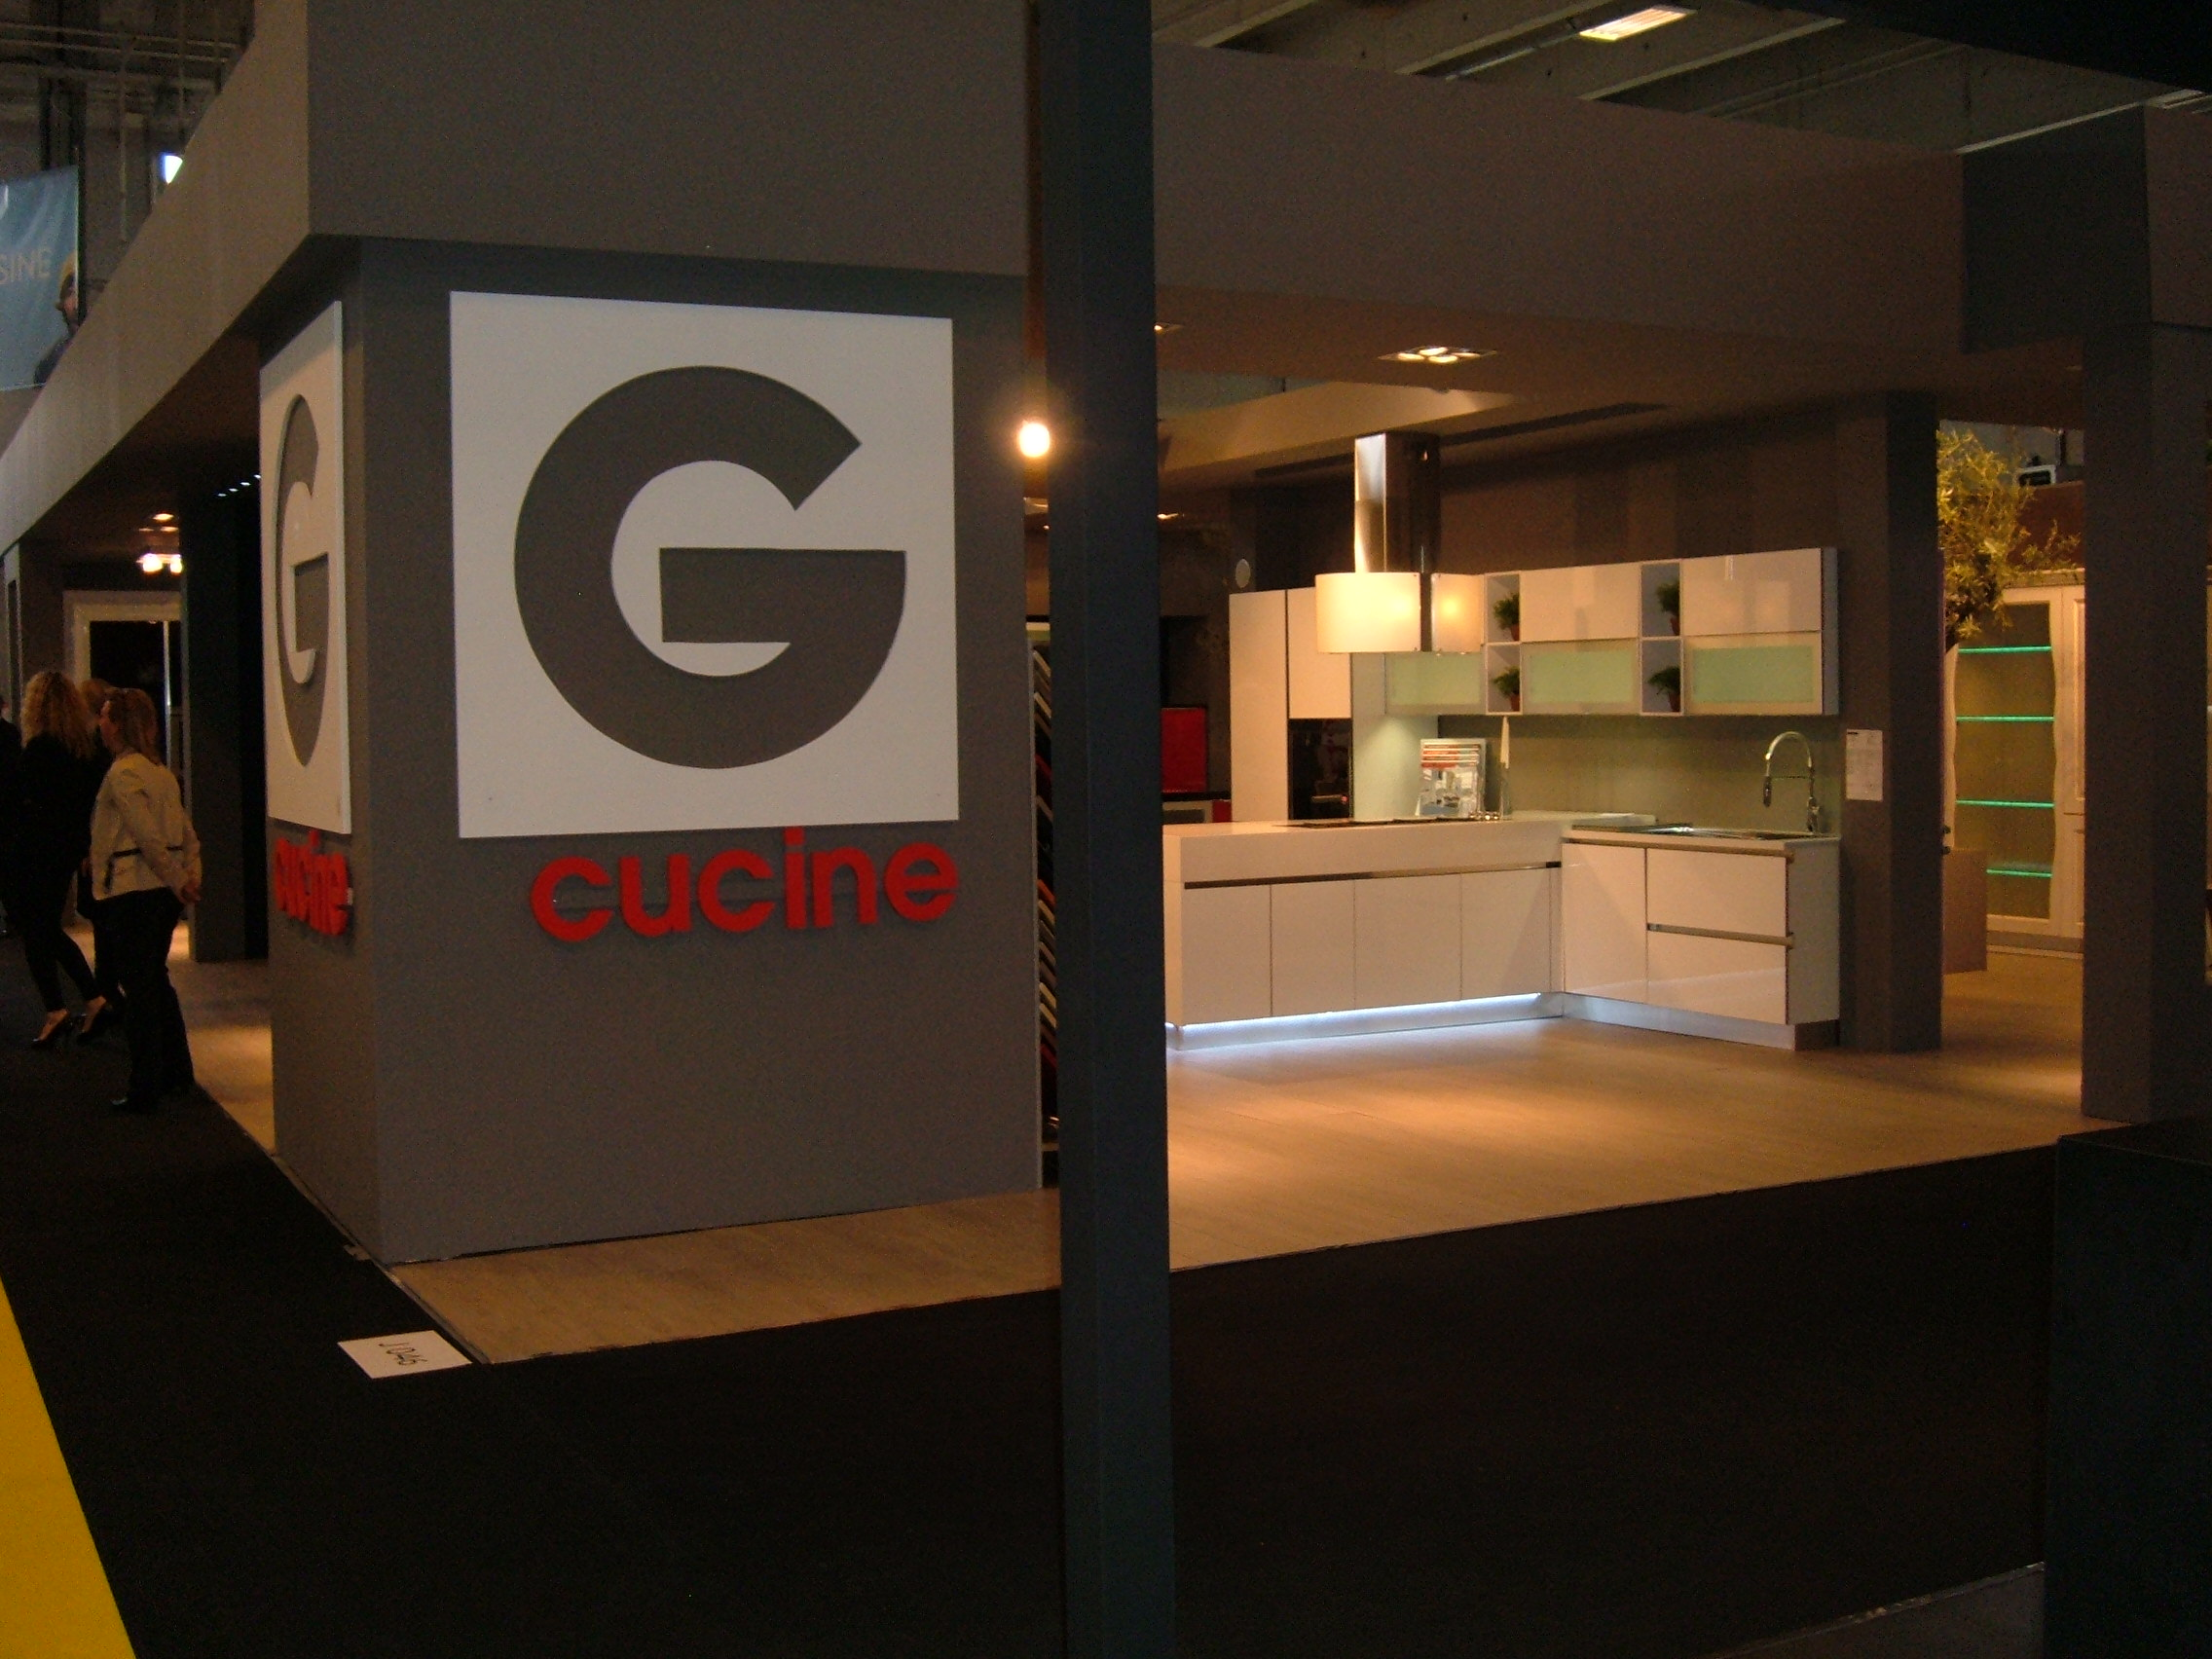 Gicinque kitchens in France